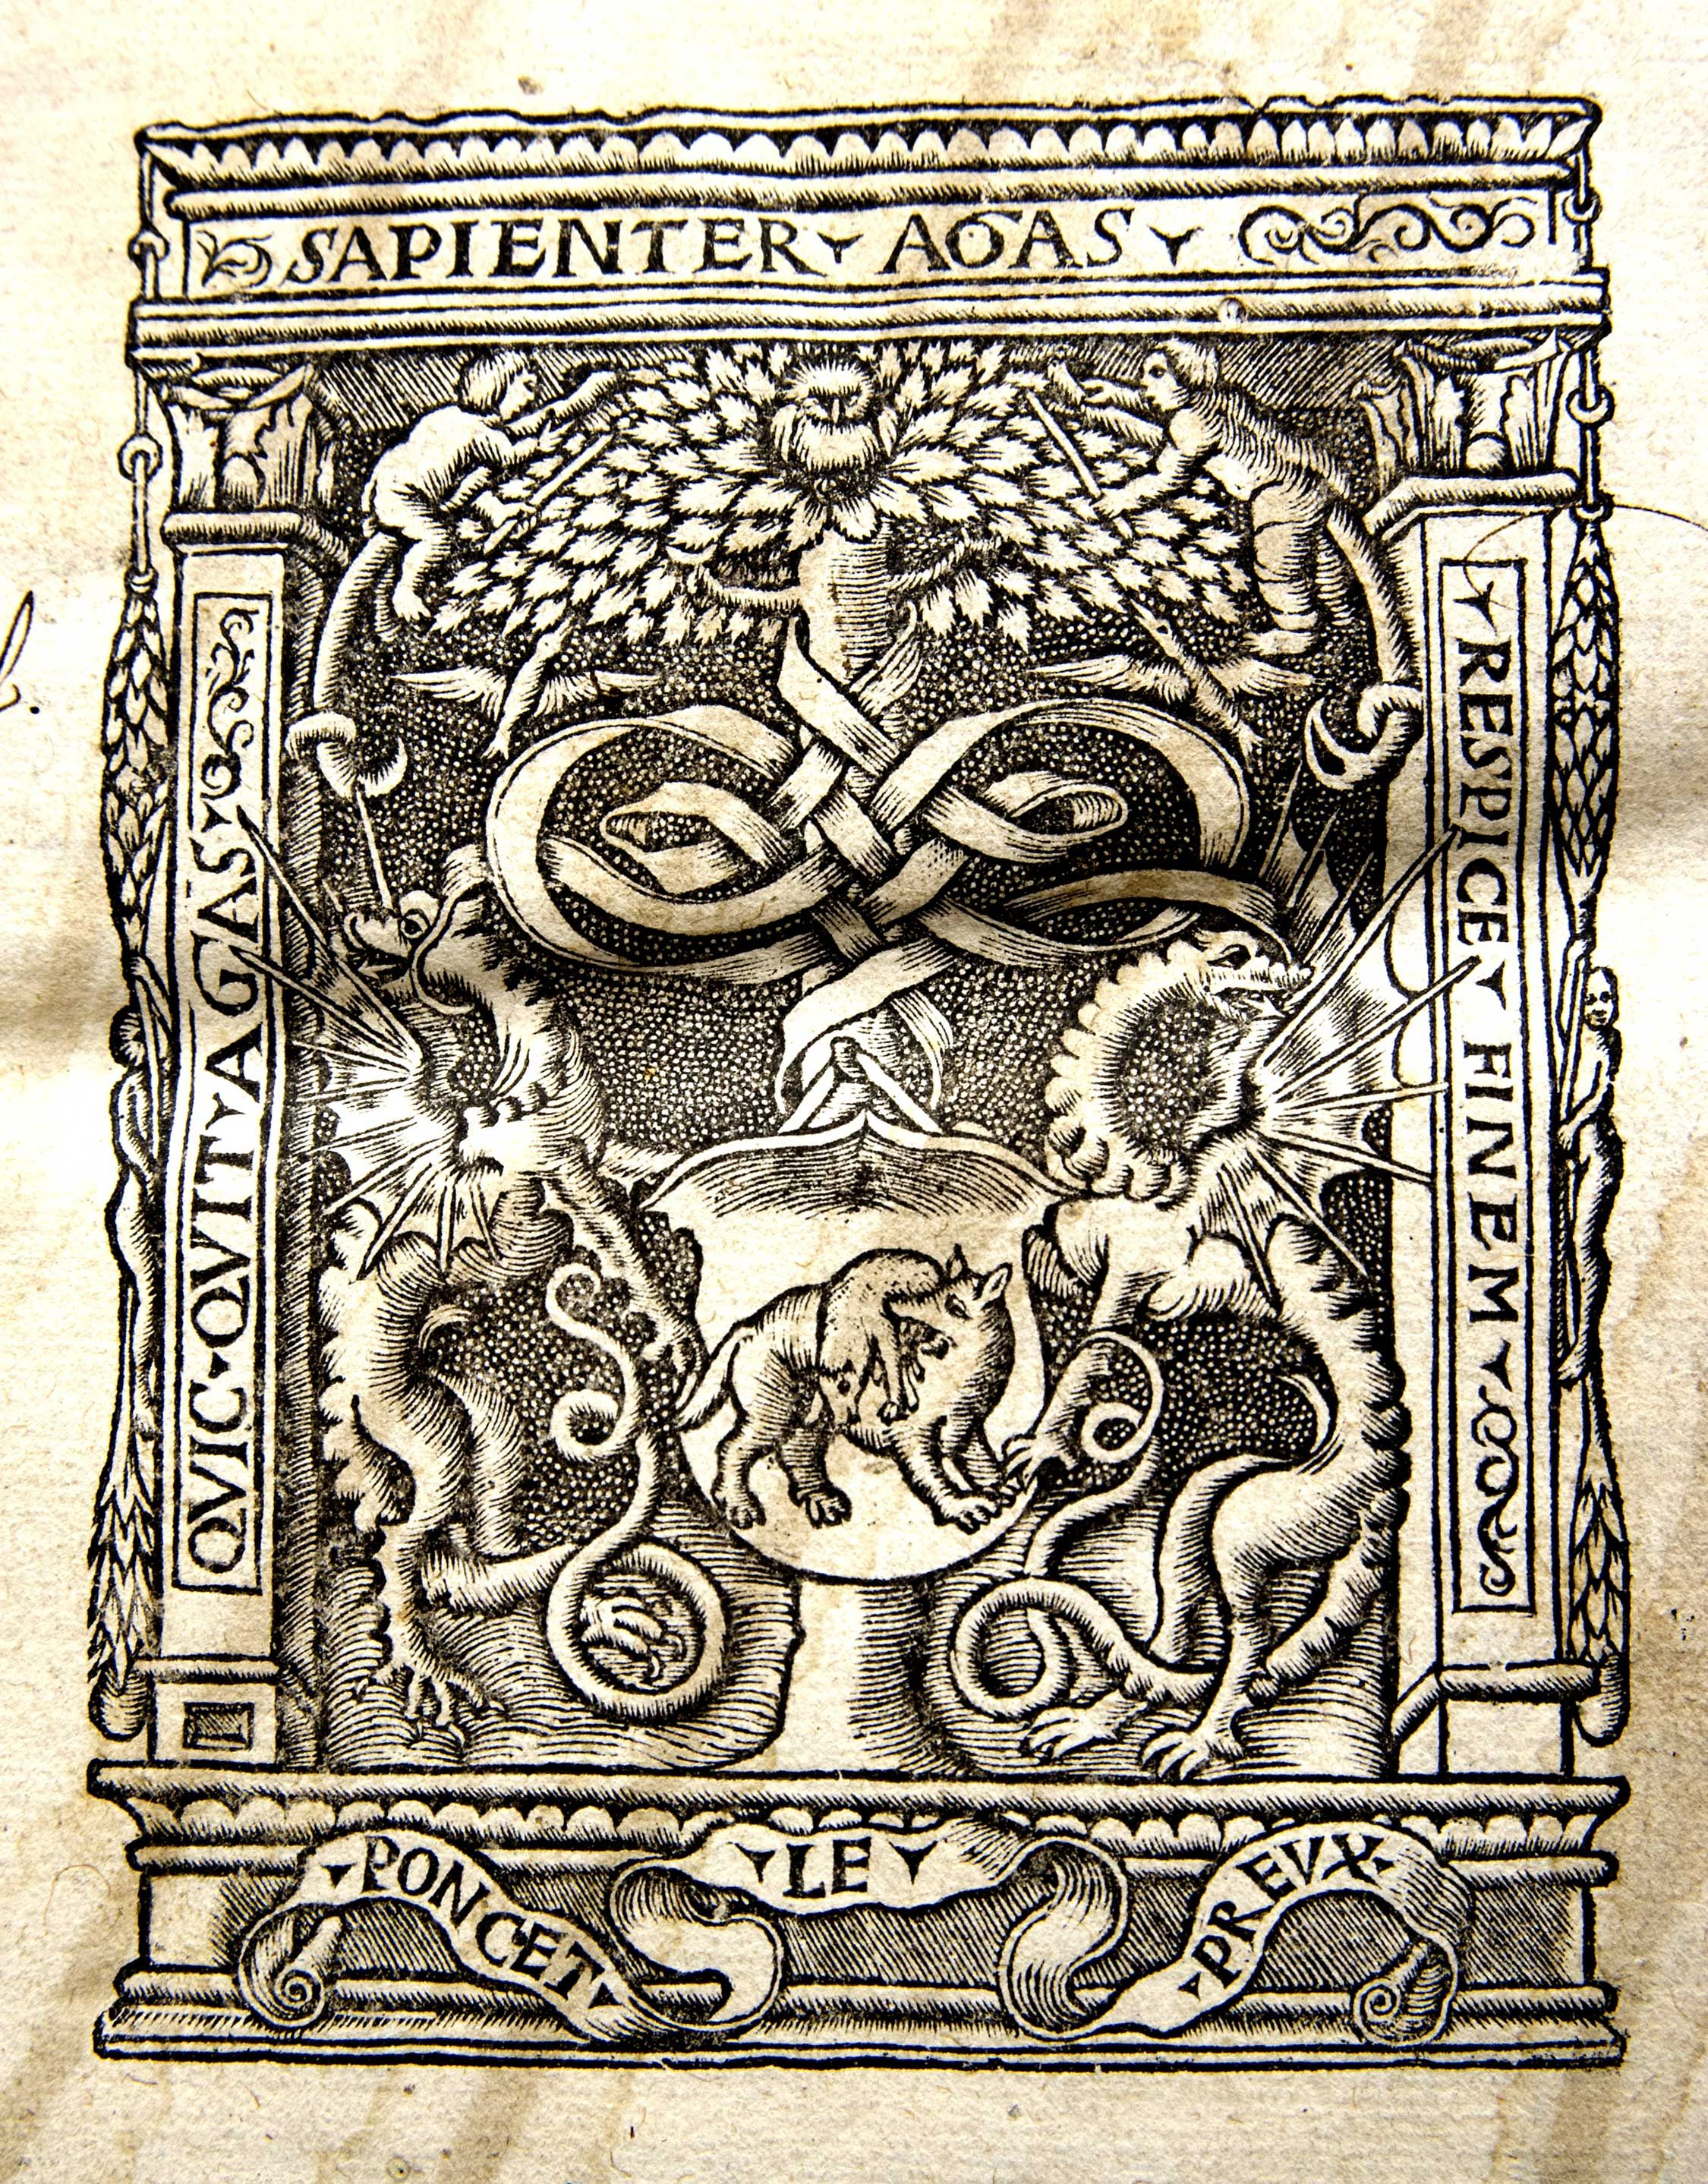 "Memorial University Libraries 24. Poncet Le Preux (1481-1559) or Poncetum le Preux was active as a printer in Paris between the years 1498 and 1559. Mark: Wolf, griffins, tree and owl with the Latin motto: ""Quic Quit Agas Sapienter Agas Respice Finem,"" or ""that which you do, do wisely, considering the end."""